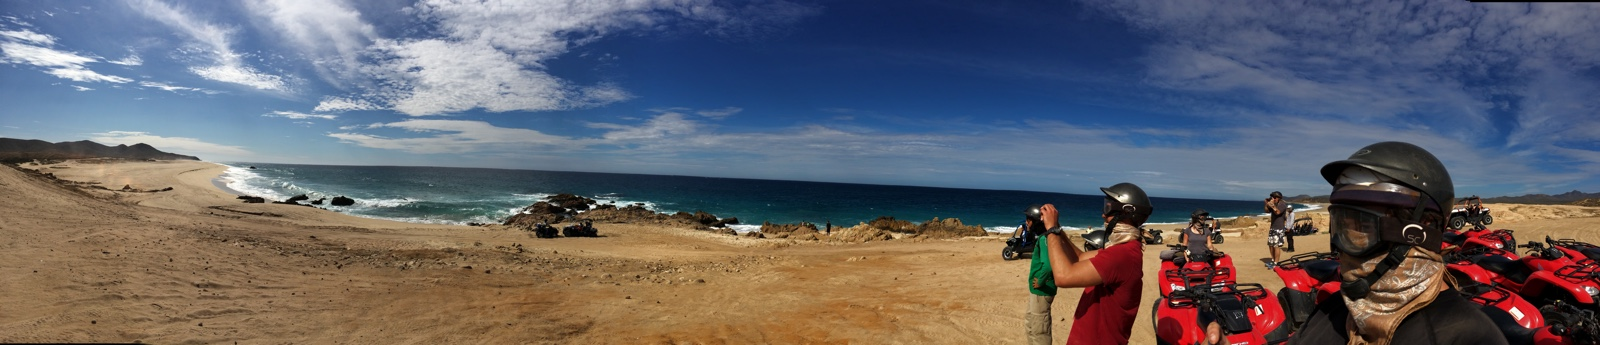 Panoramic photo of the beach while on an ATV tour